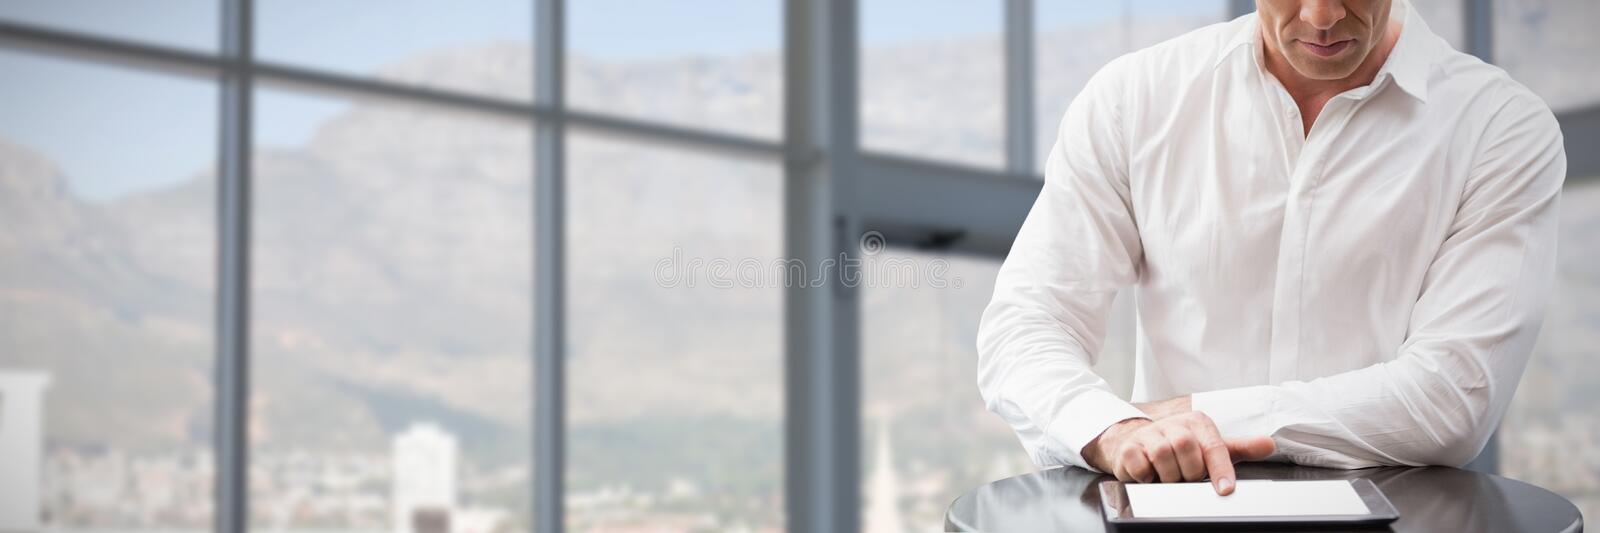 Composite image of focues businessman using digital tablet while sitting against white background. Focues businessman using digital tablet while sitting against stock image